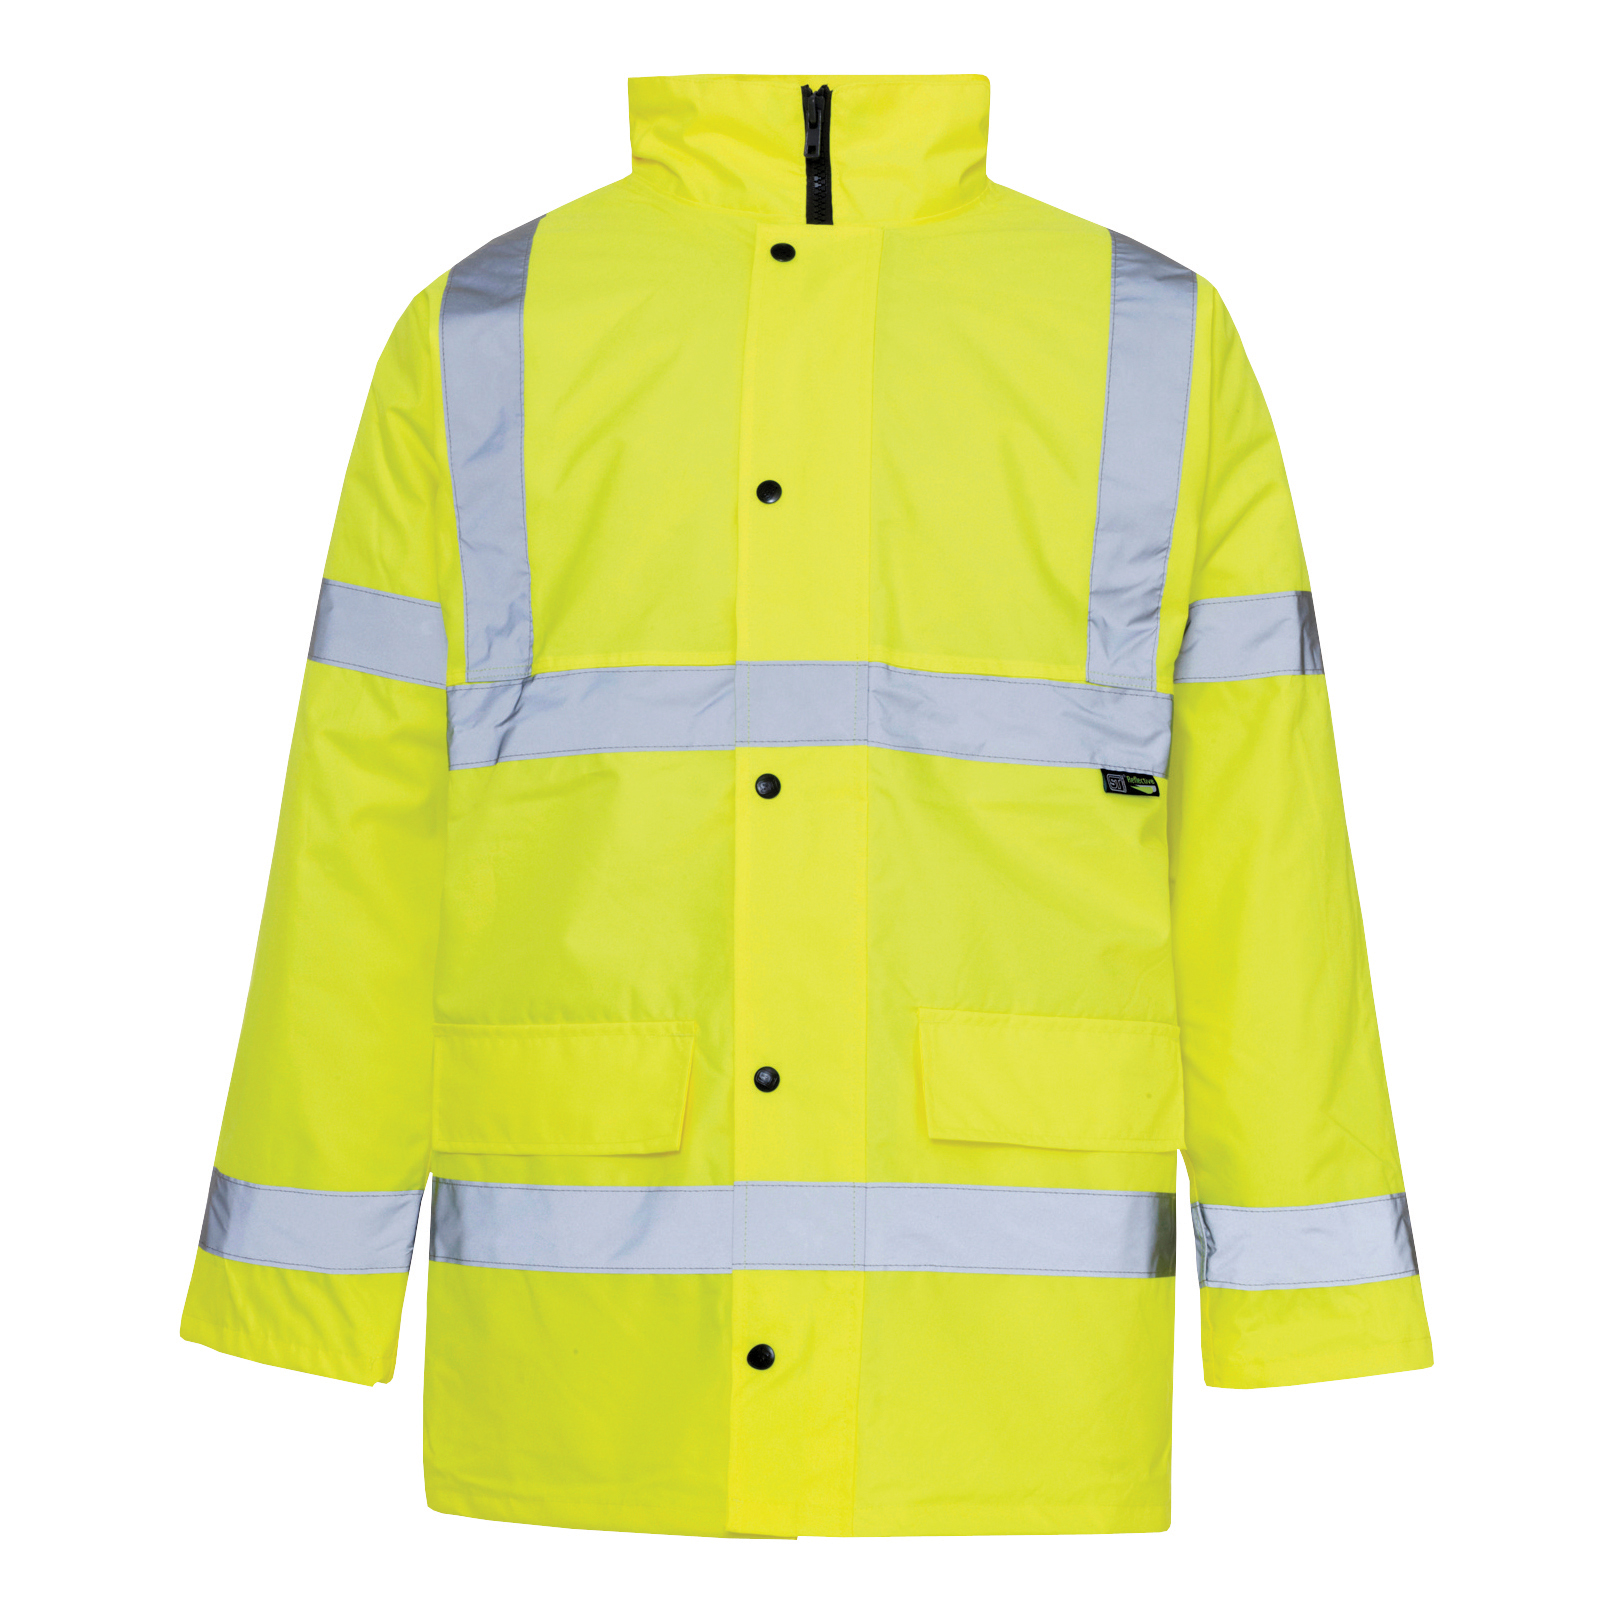 High Visibility Standard Parka with 2-Way Zip Fastening Large Yellow Approx 3 Day Leadtime